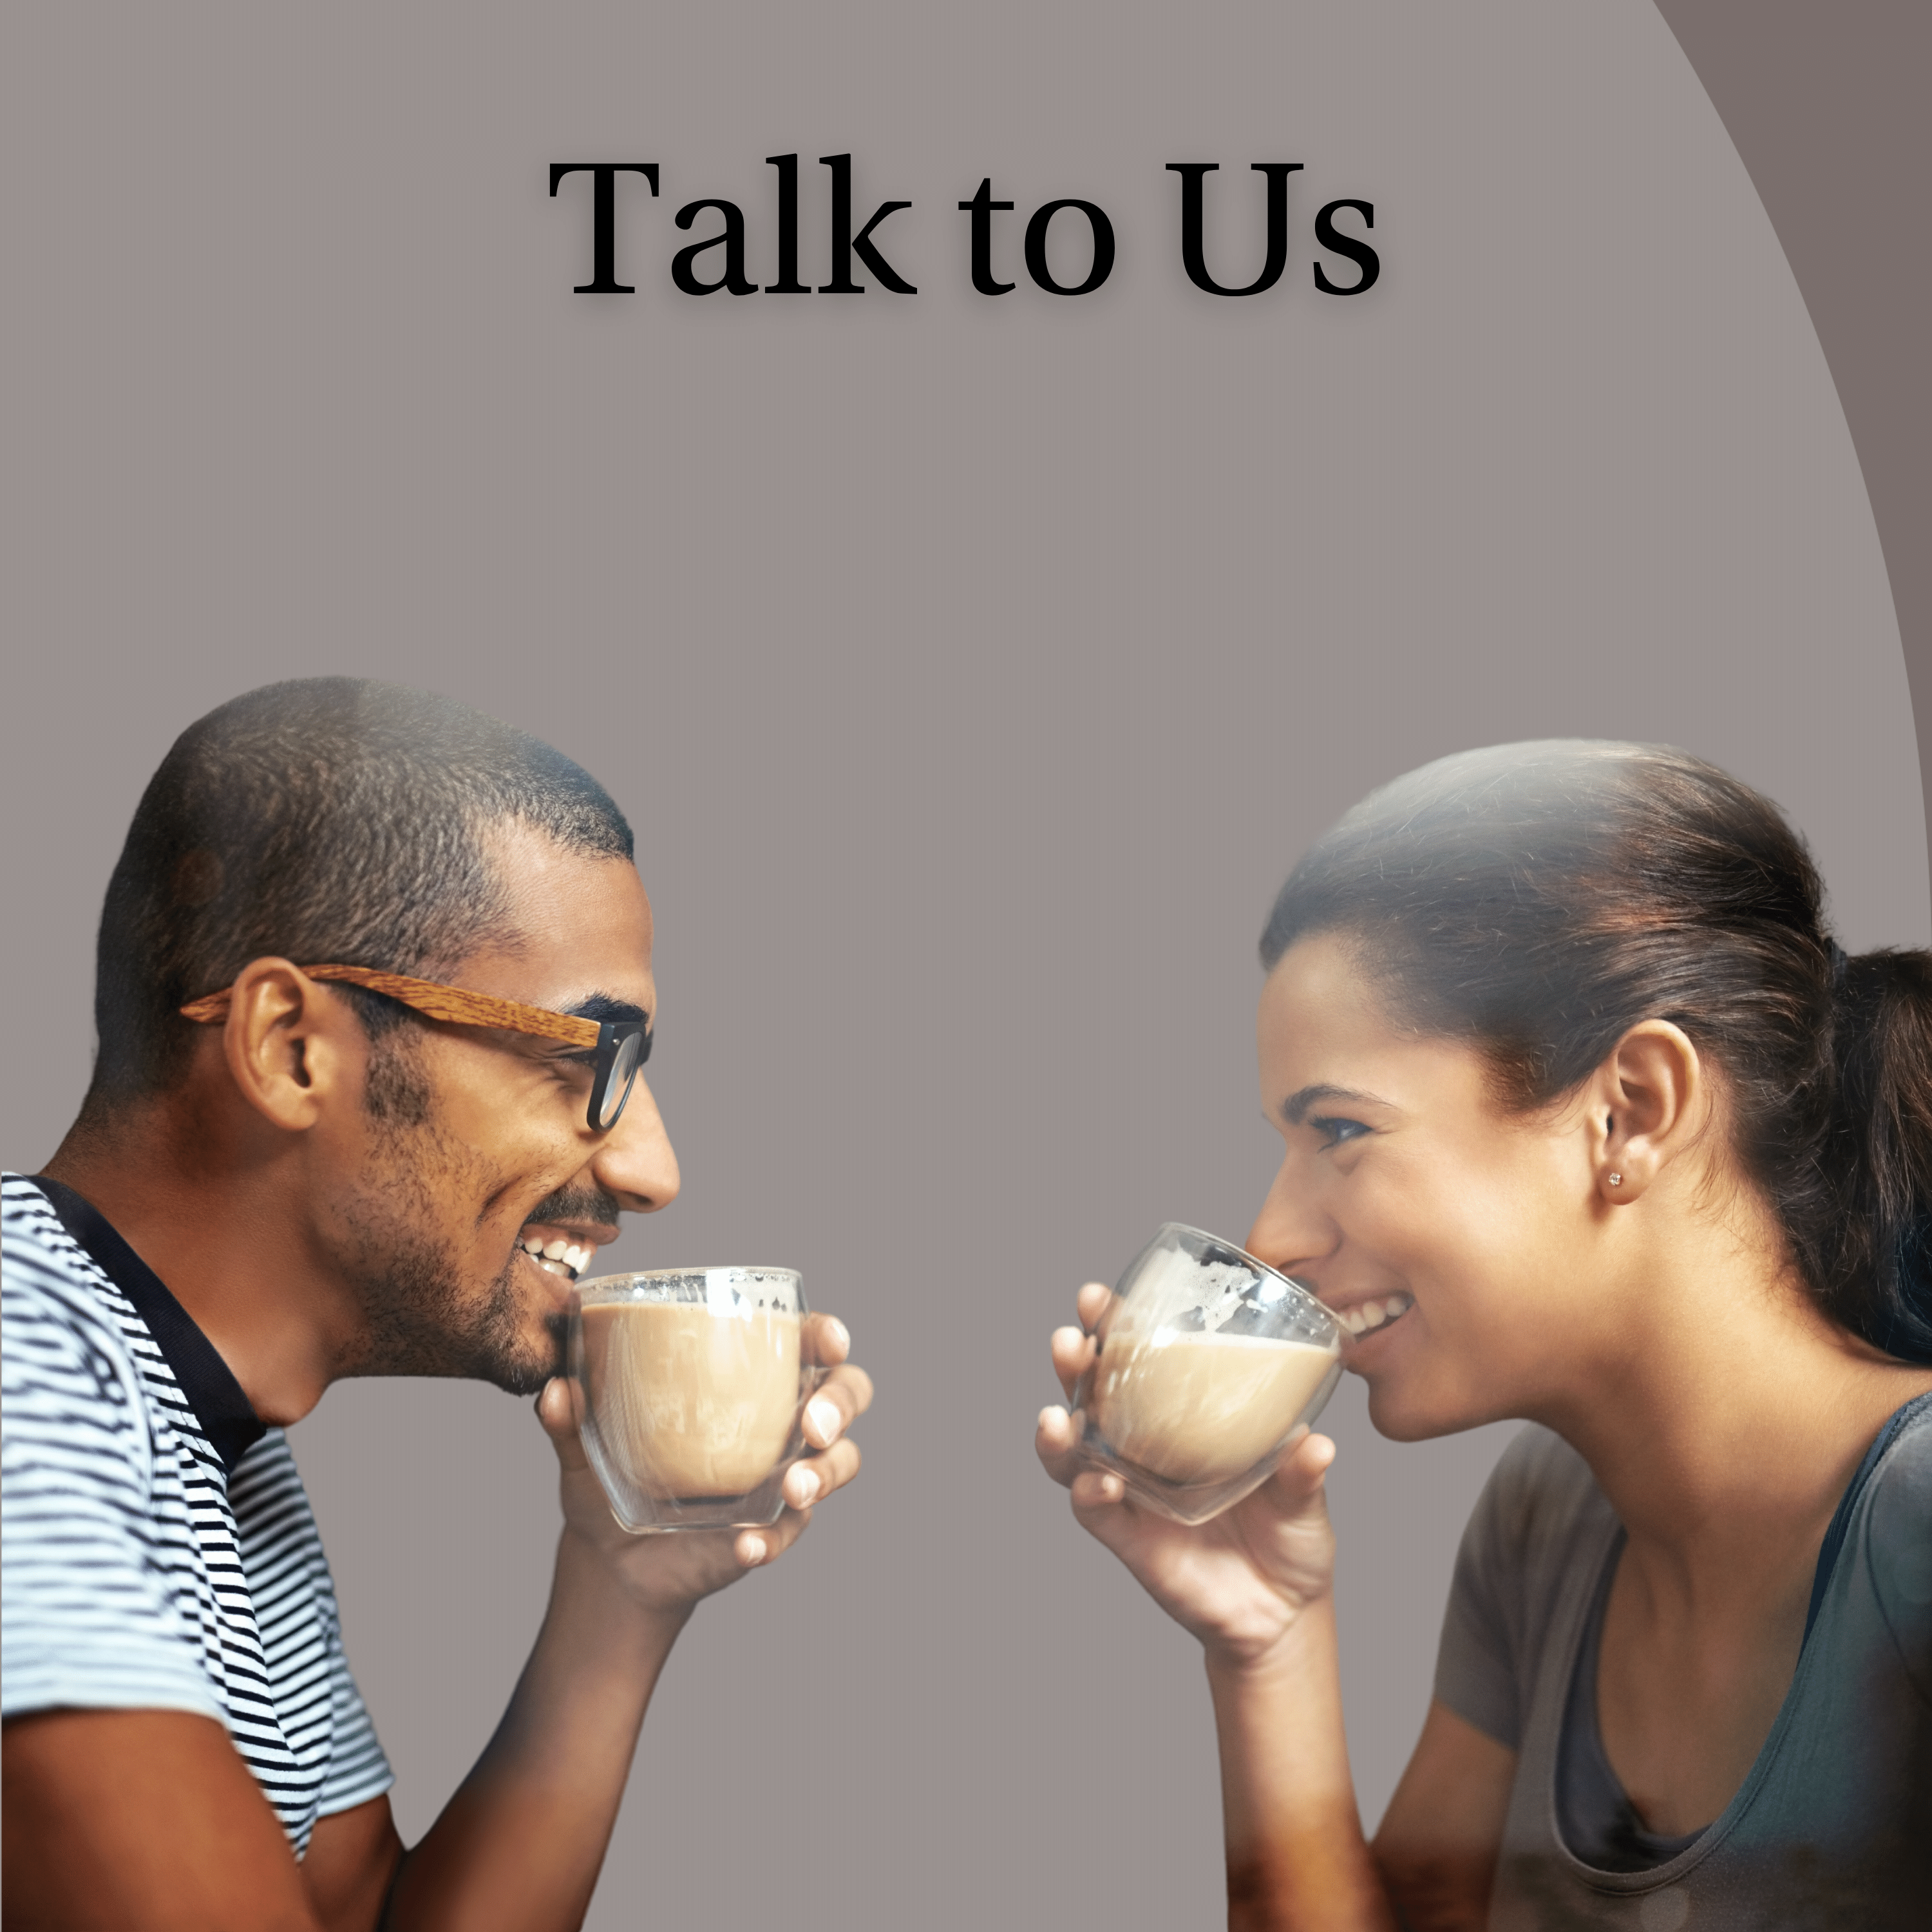 Home Page Talk to Us (3000 x 3000 px)001